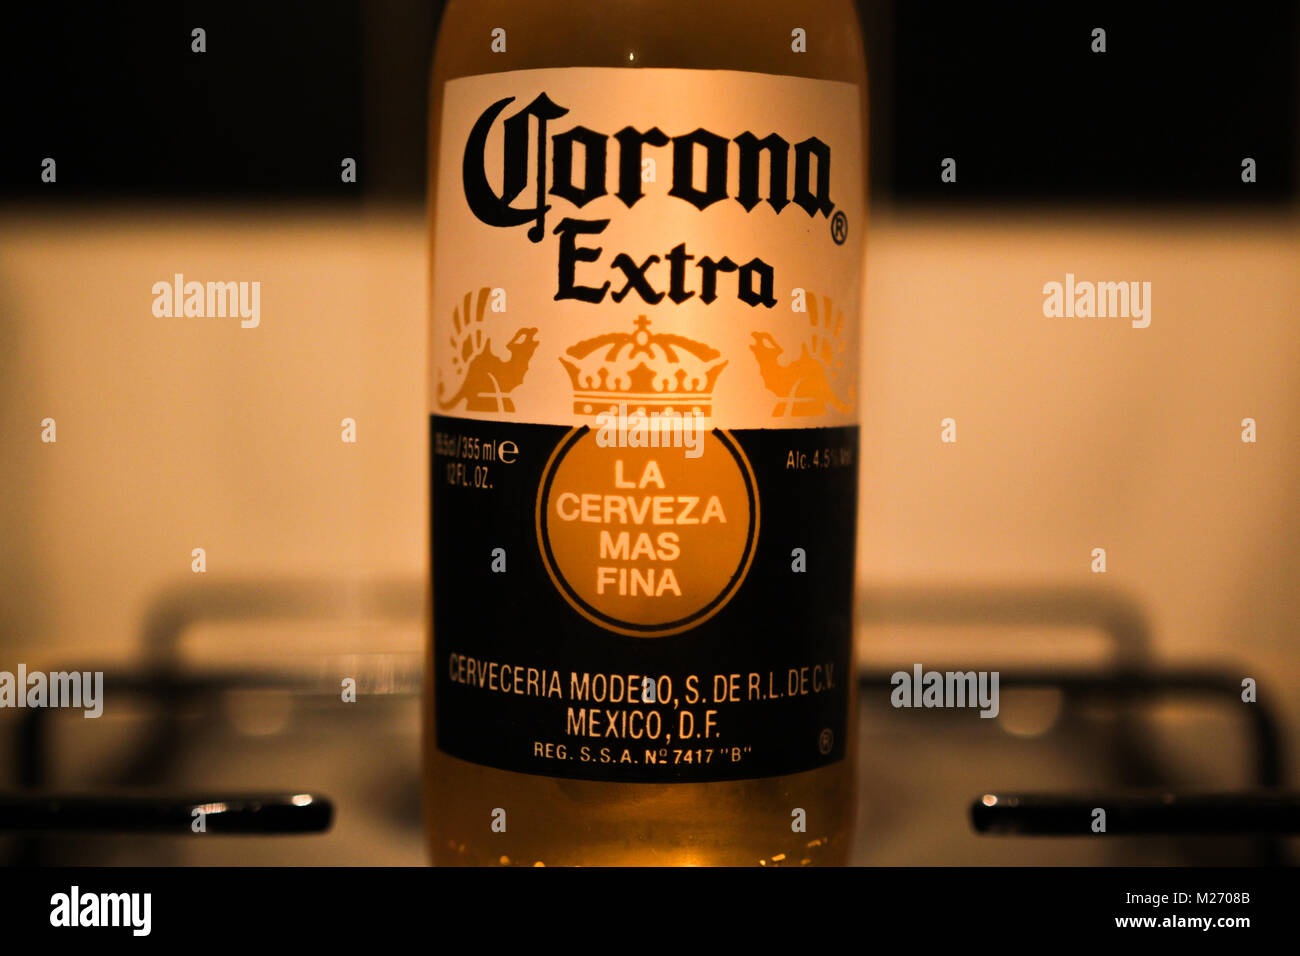 Corona beer stock photos corona beer stock images page 2 alamy m2708b mozeypictures Choice Image